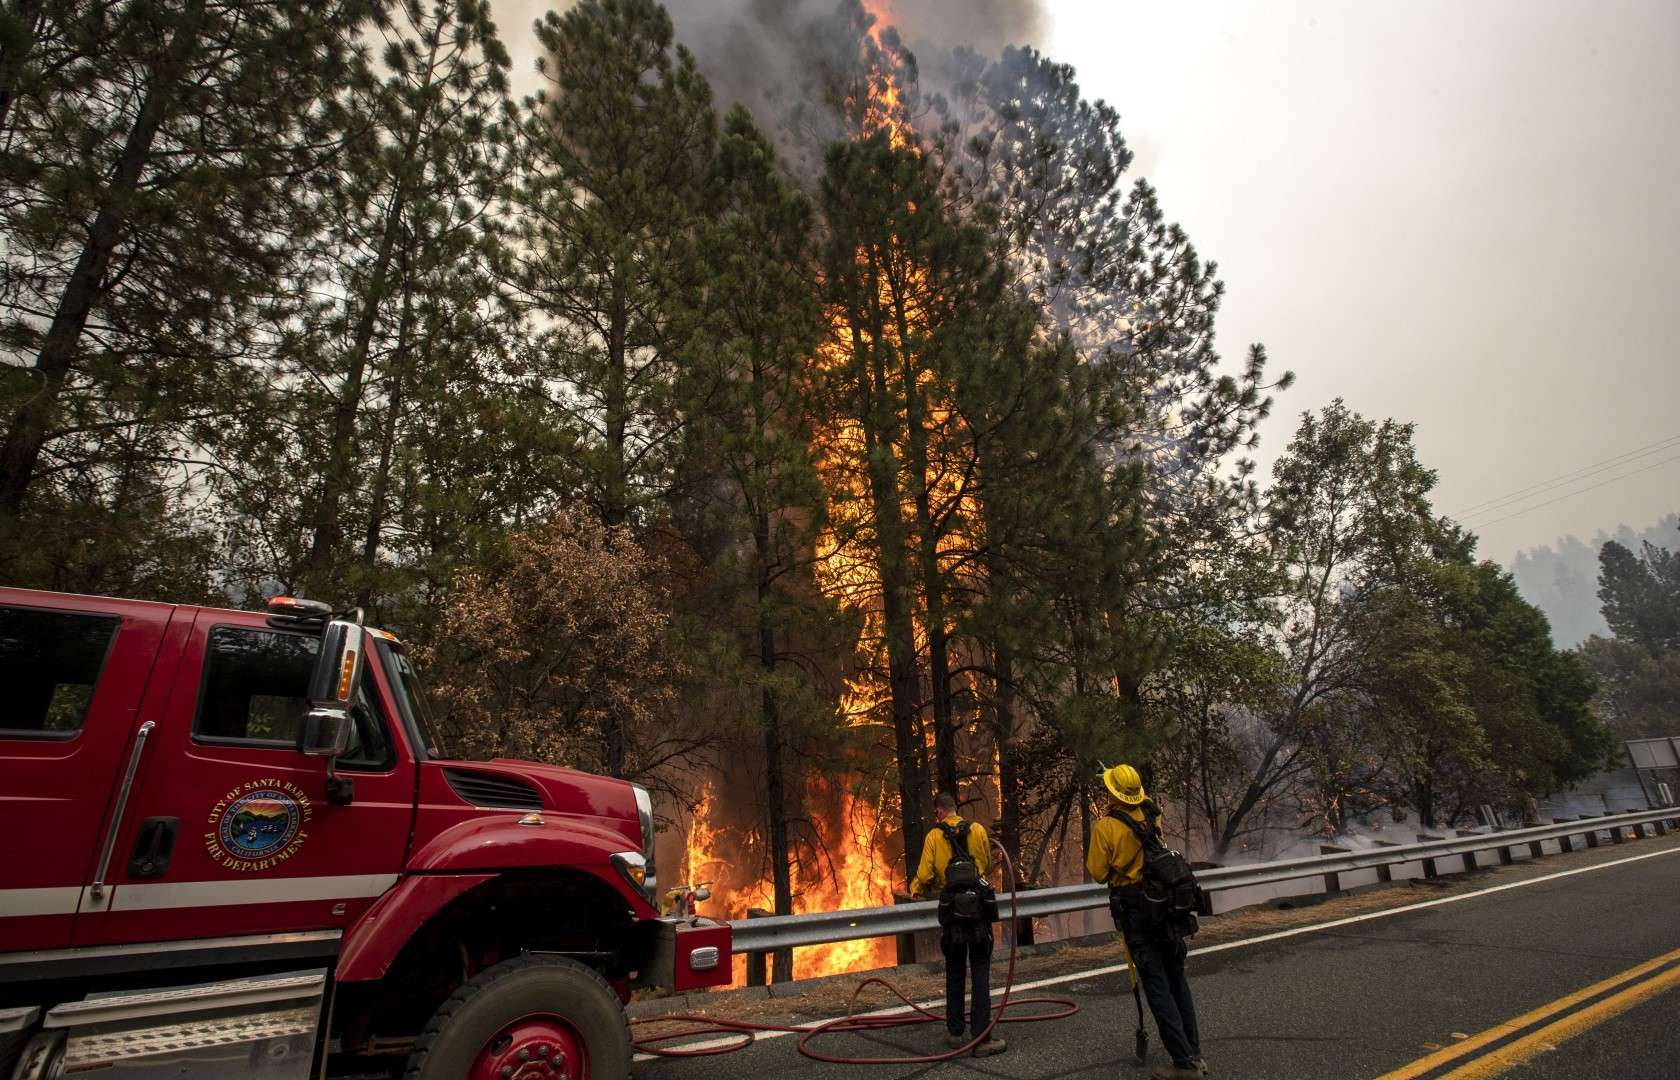 Flames from the Bear fire in Oroville, Calif. (Brian van der Brug/Los Angeles Times)